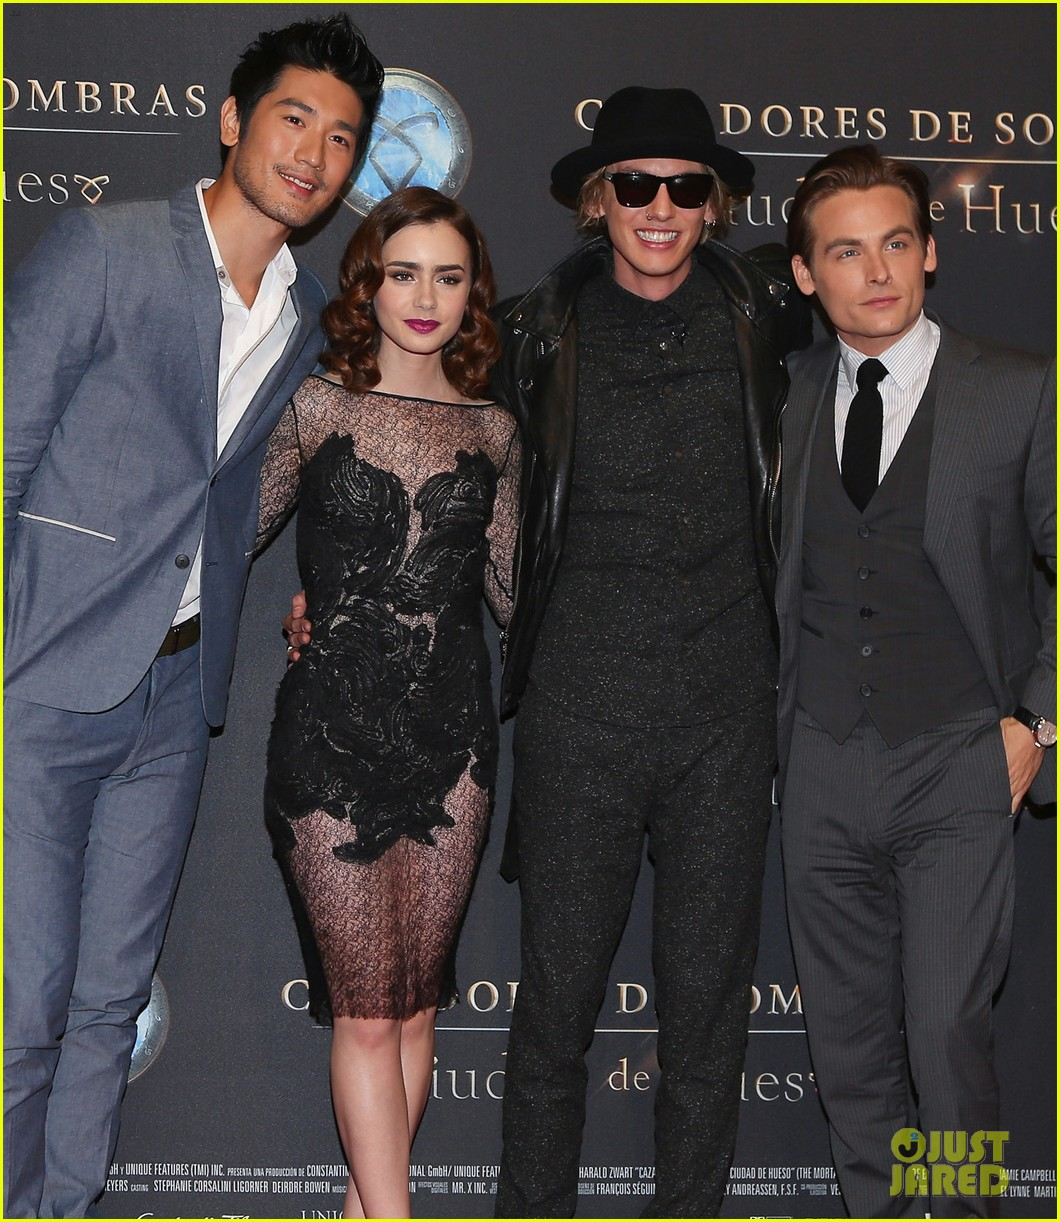 ... Mortal Instruments: City Of Ashes' Delayed After 'City Of Bones' Flops